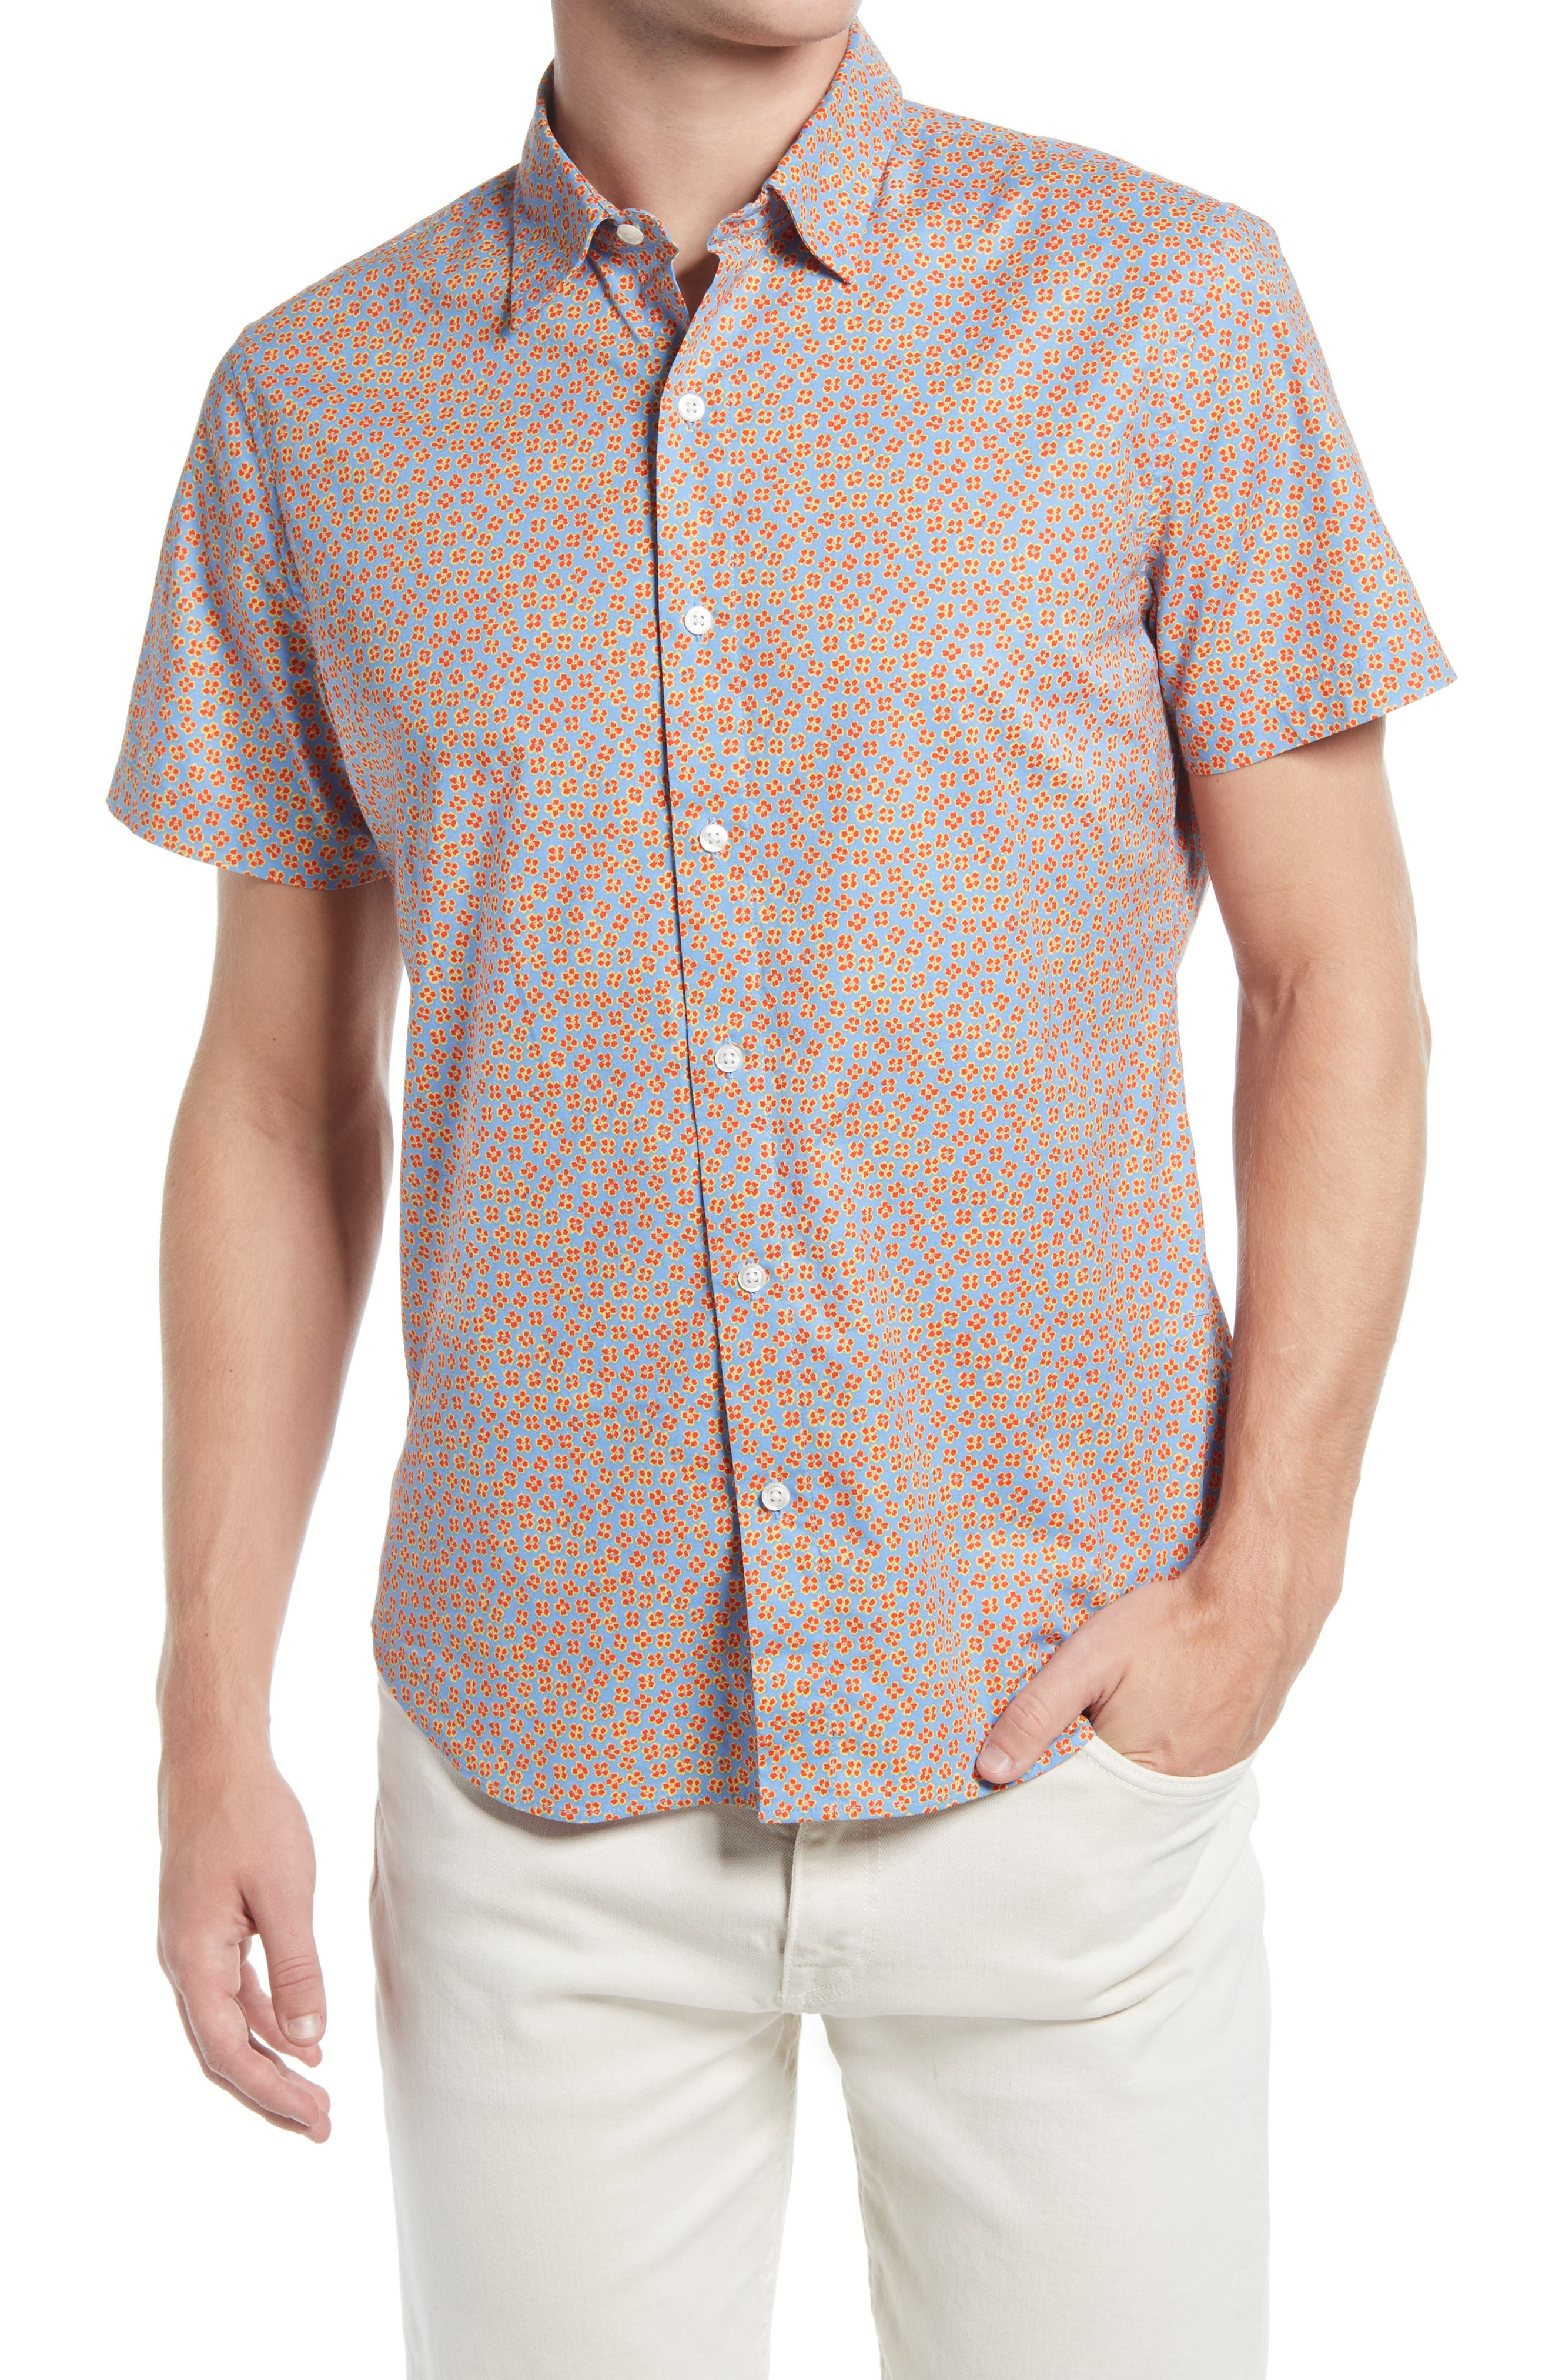 Riviera Slim Fit Floral Short Sleeve Button-Up Shirt